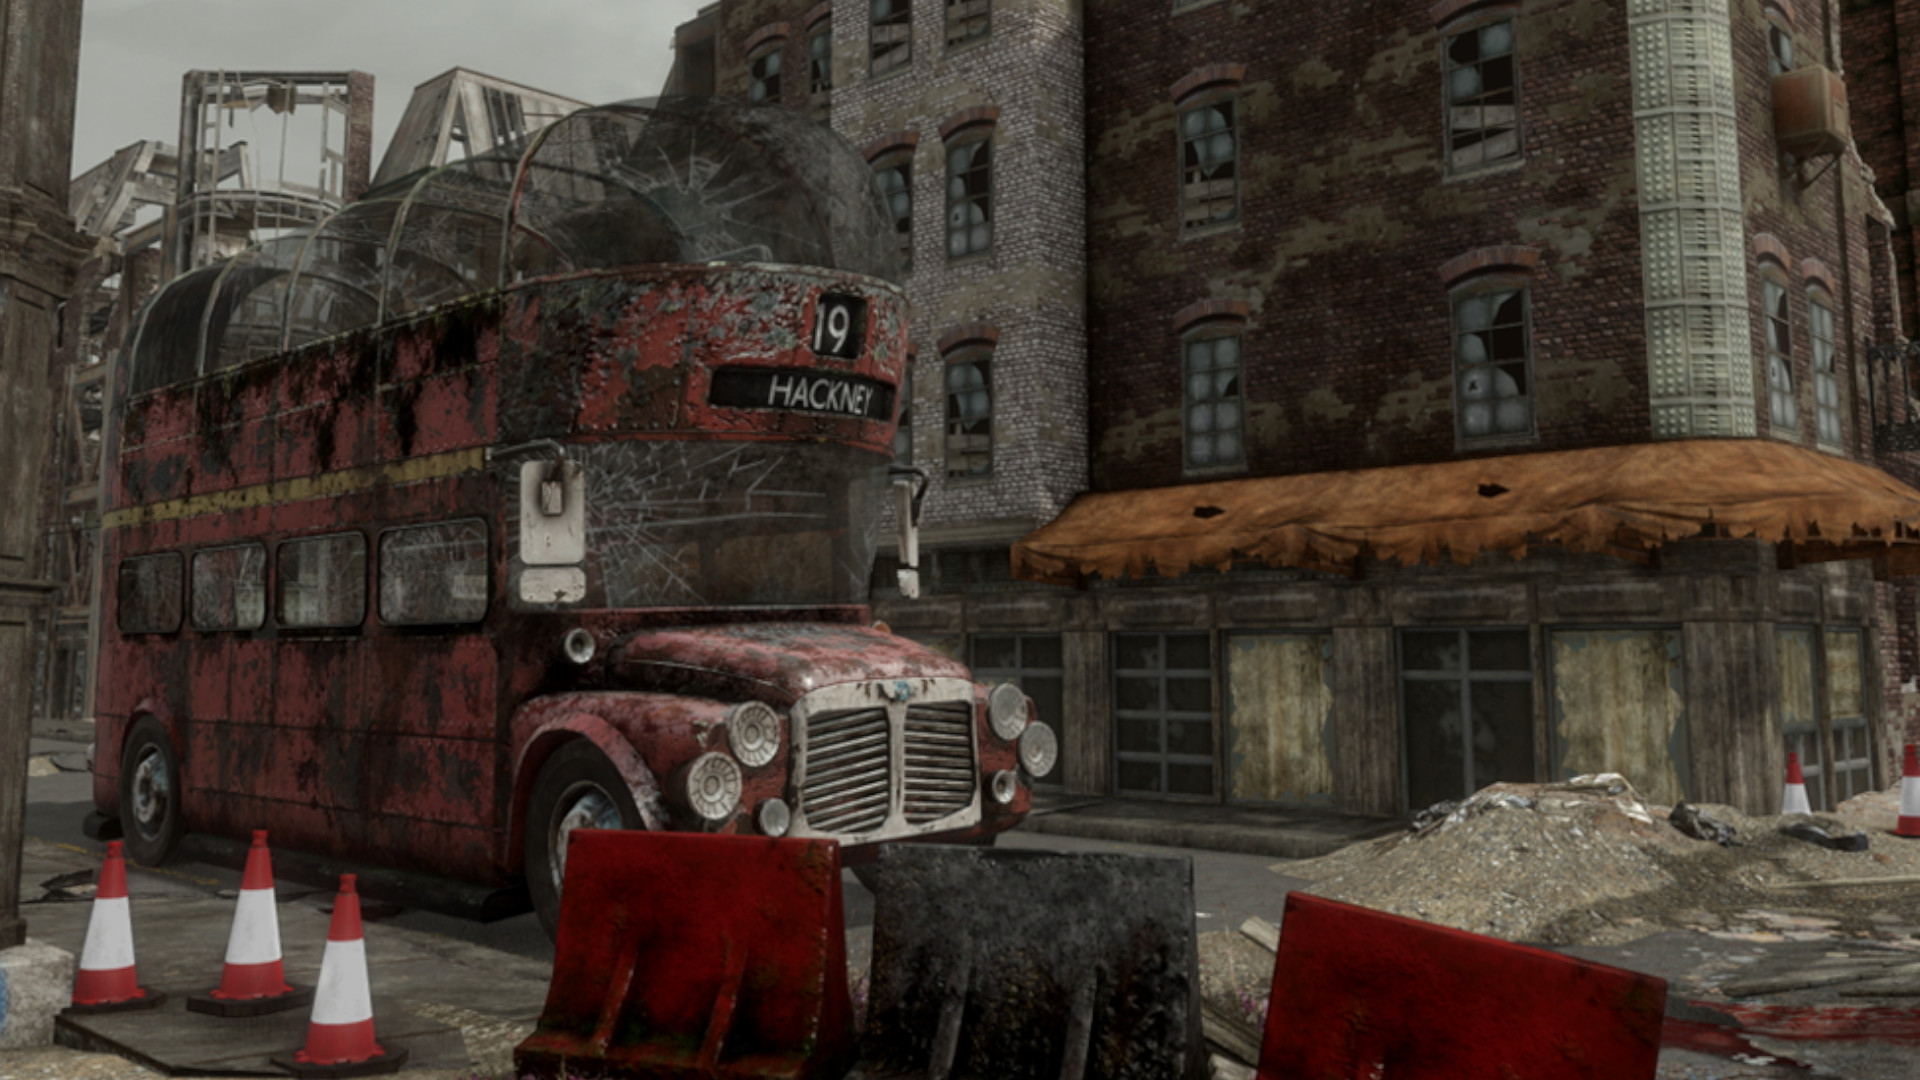 Fallout: London is basically free Fallout 4 DLC courtesy of modders